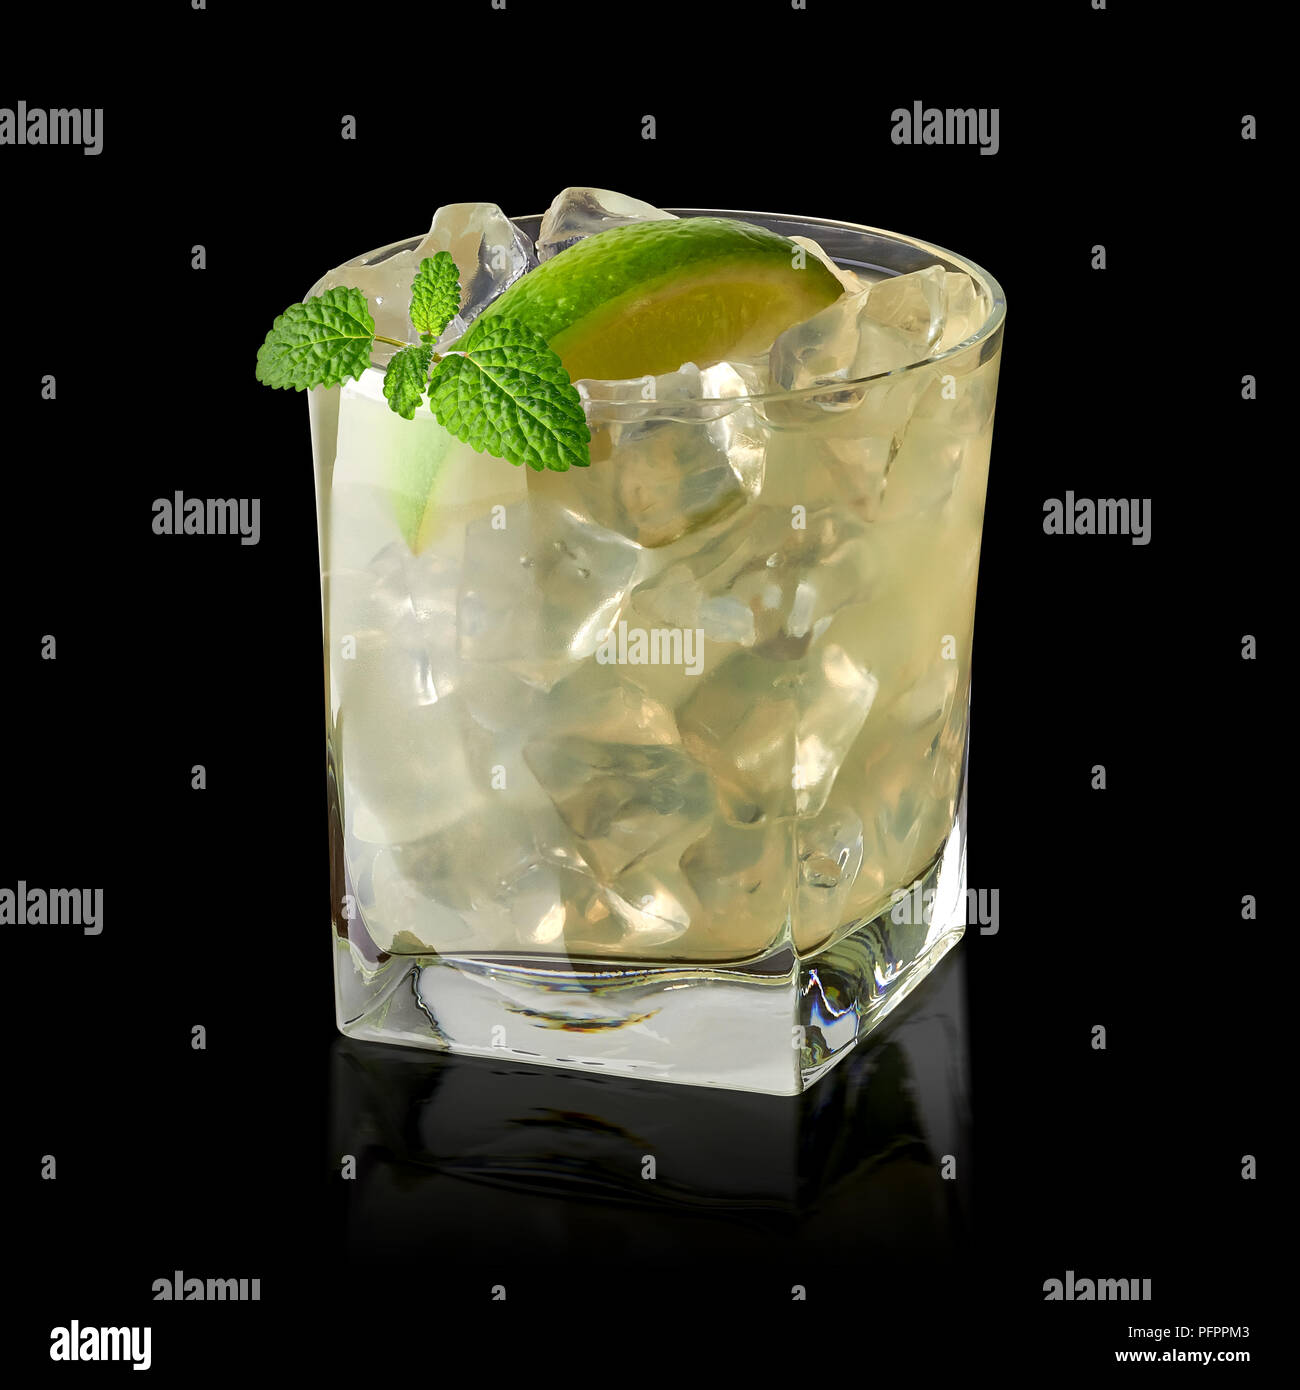 Vodka lime, caipirinha, gimlet or gin tonic with ice in glass on black background Stock Photo